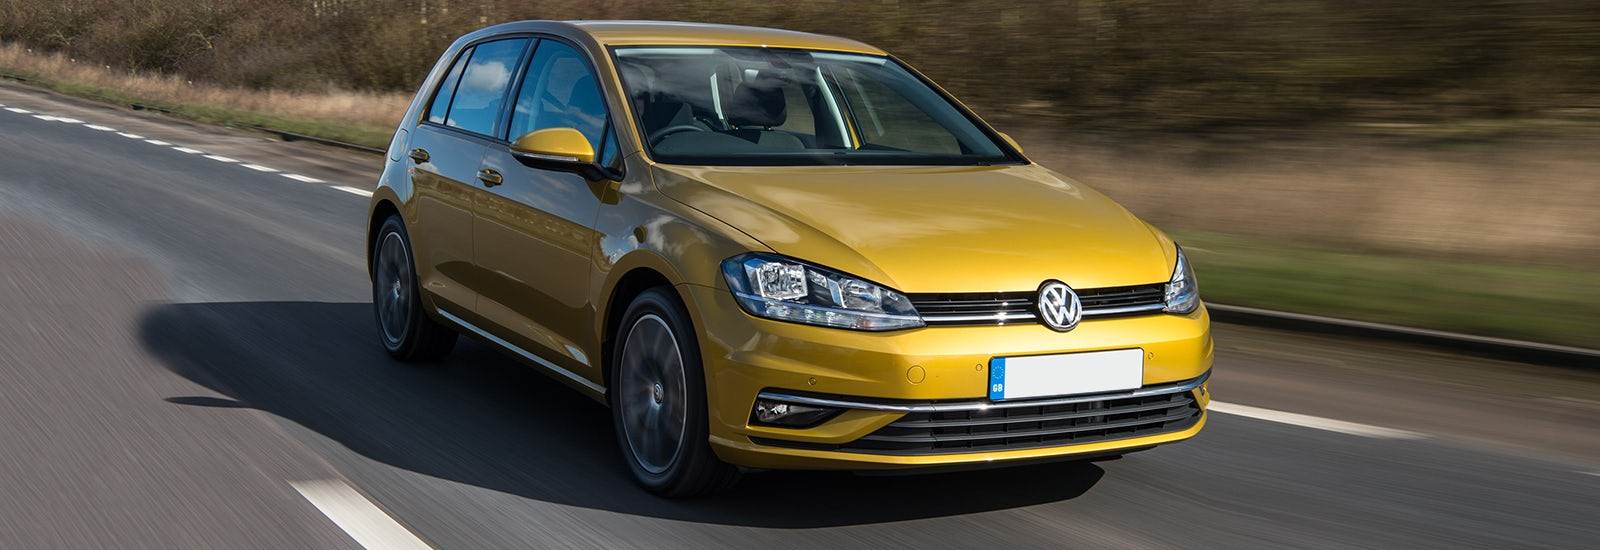 Vw golf mk75 sizes and dimensions guide carwow volkswagen golf driving malvernweather Gallery